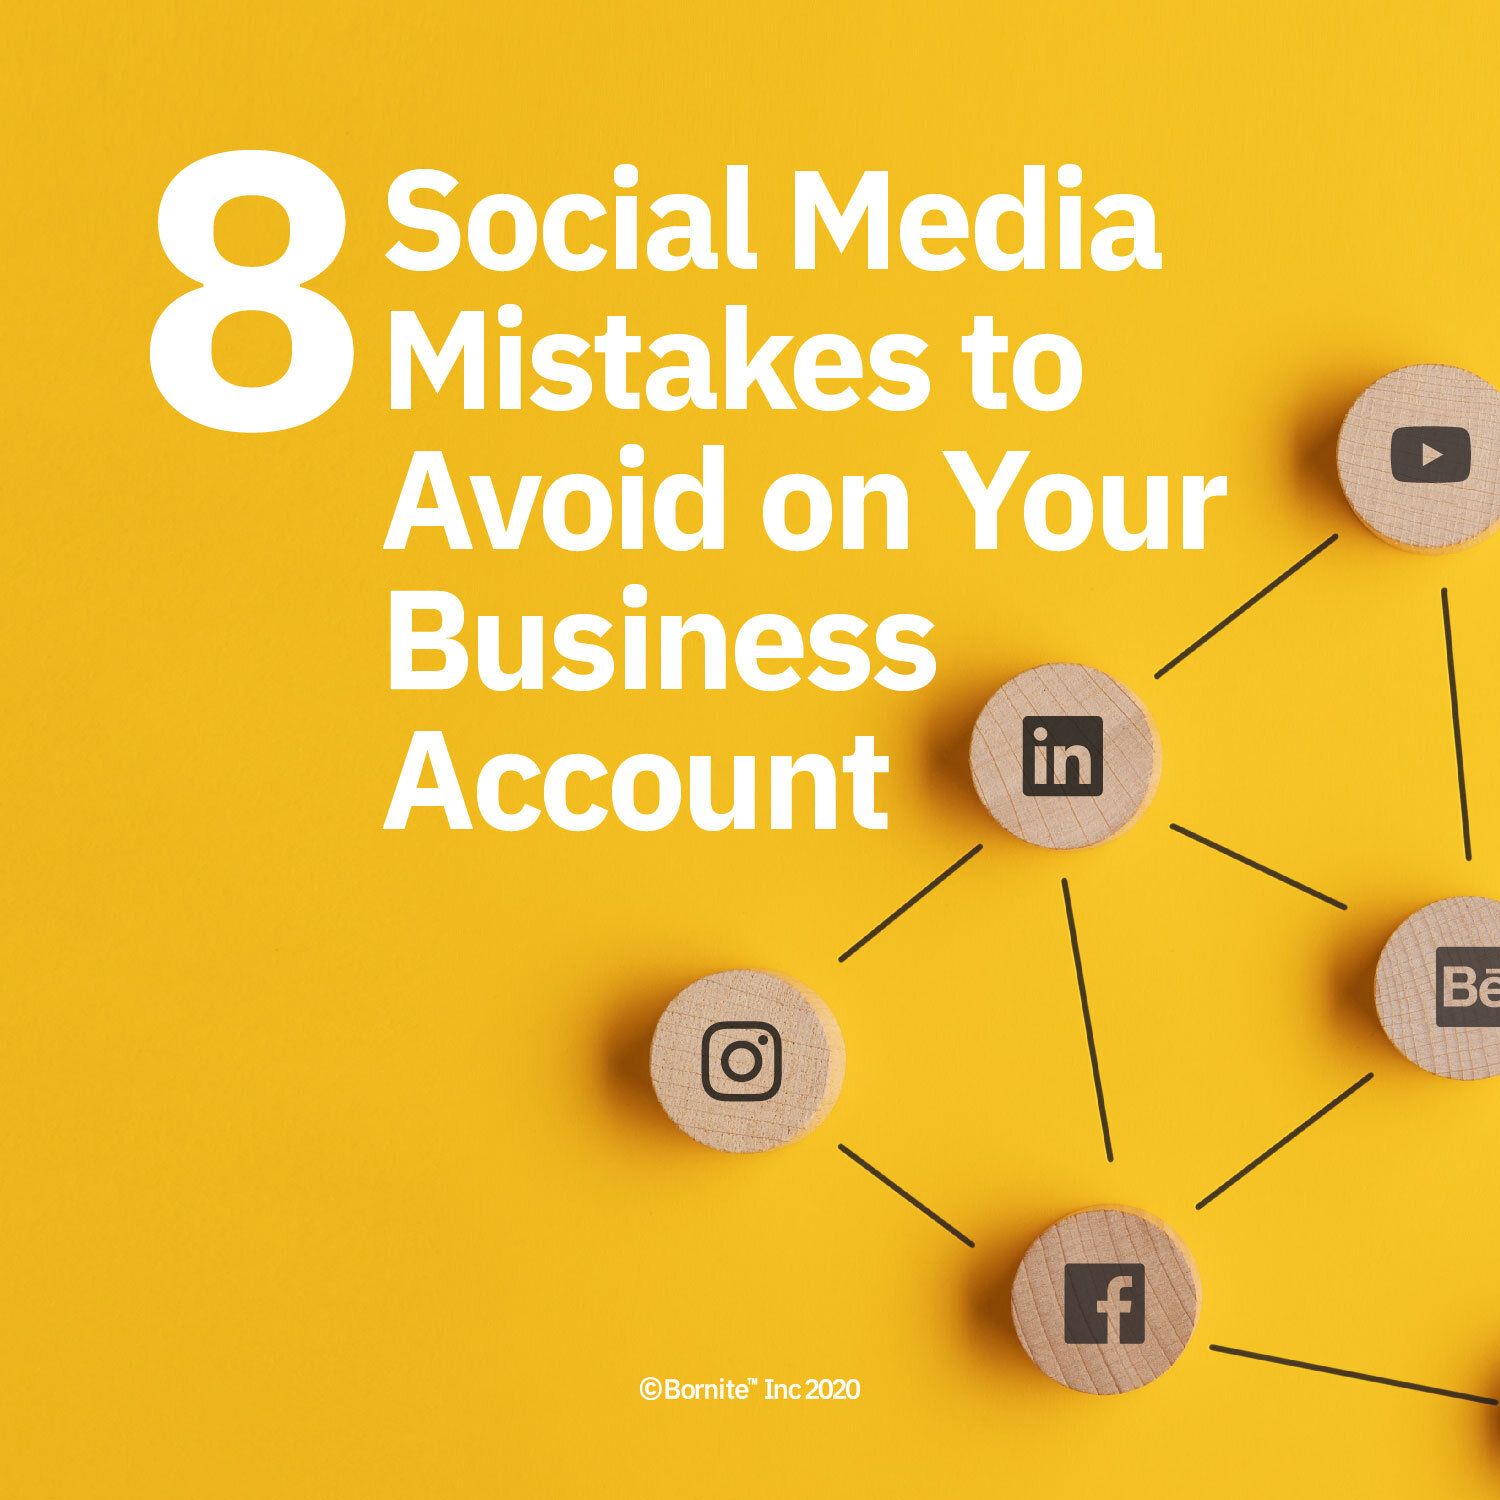 8 Social Media Mistakes You Should Avoid on Your Business Account